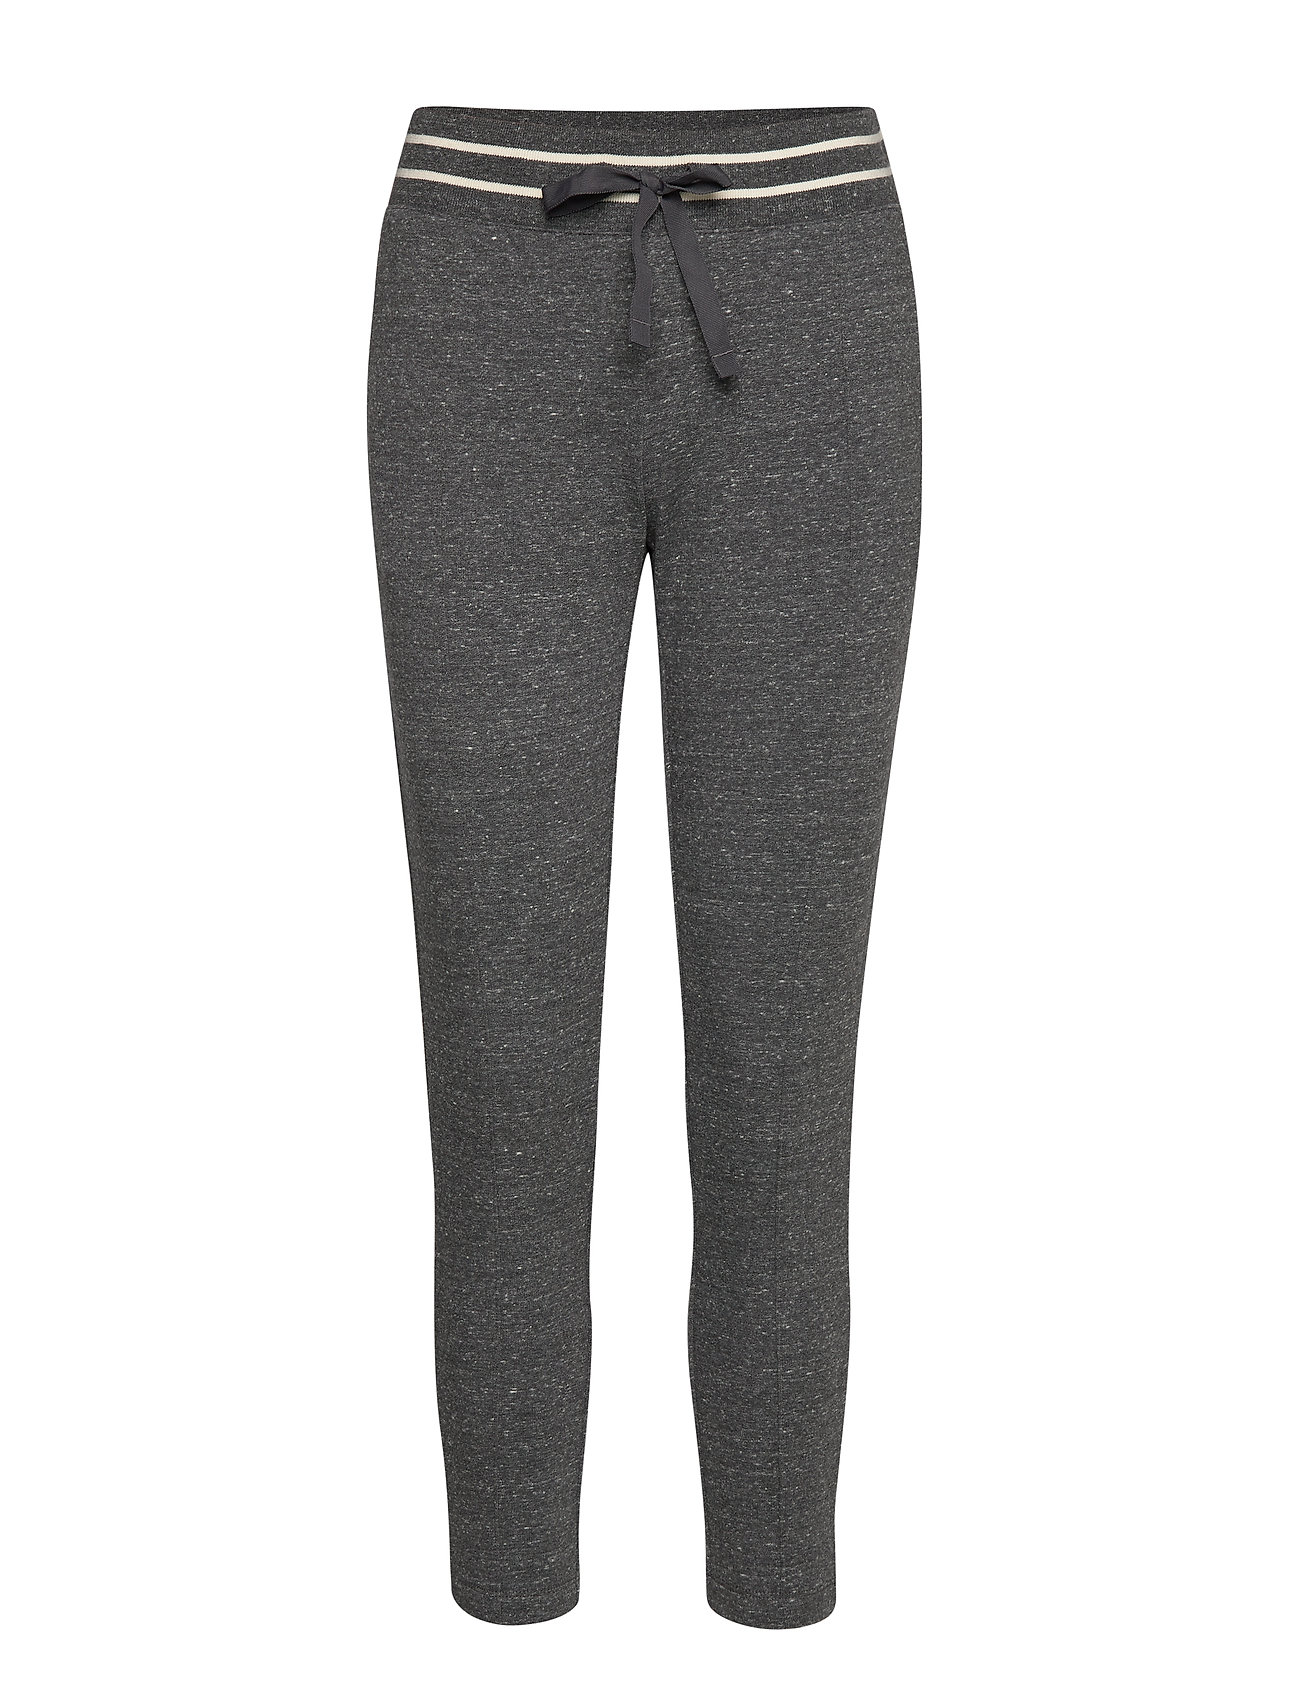 Champion Slim Pants - NEW CHARCOAL GREY MELANGE DARK